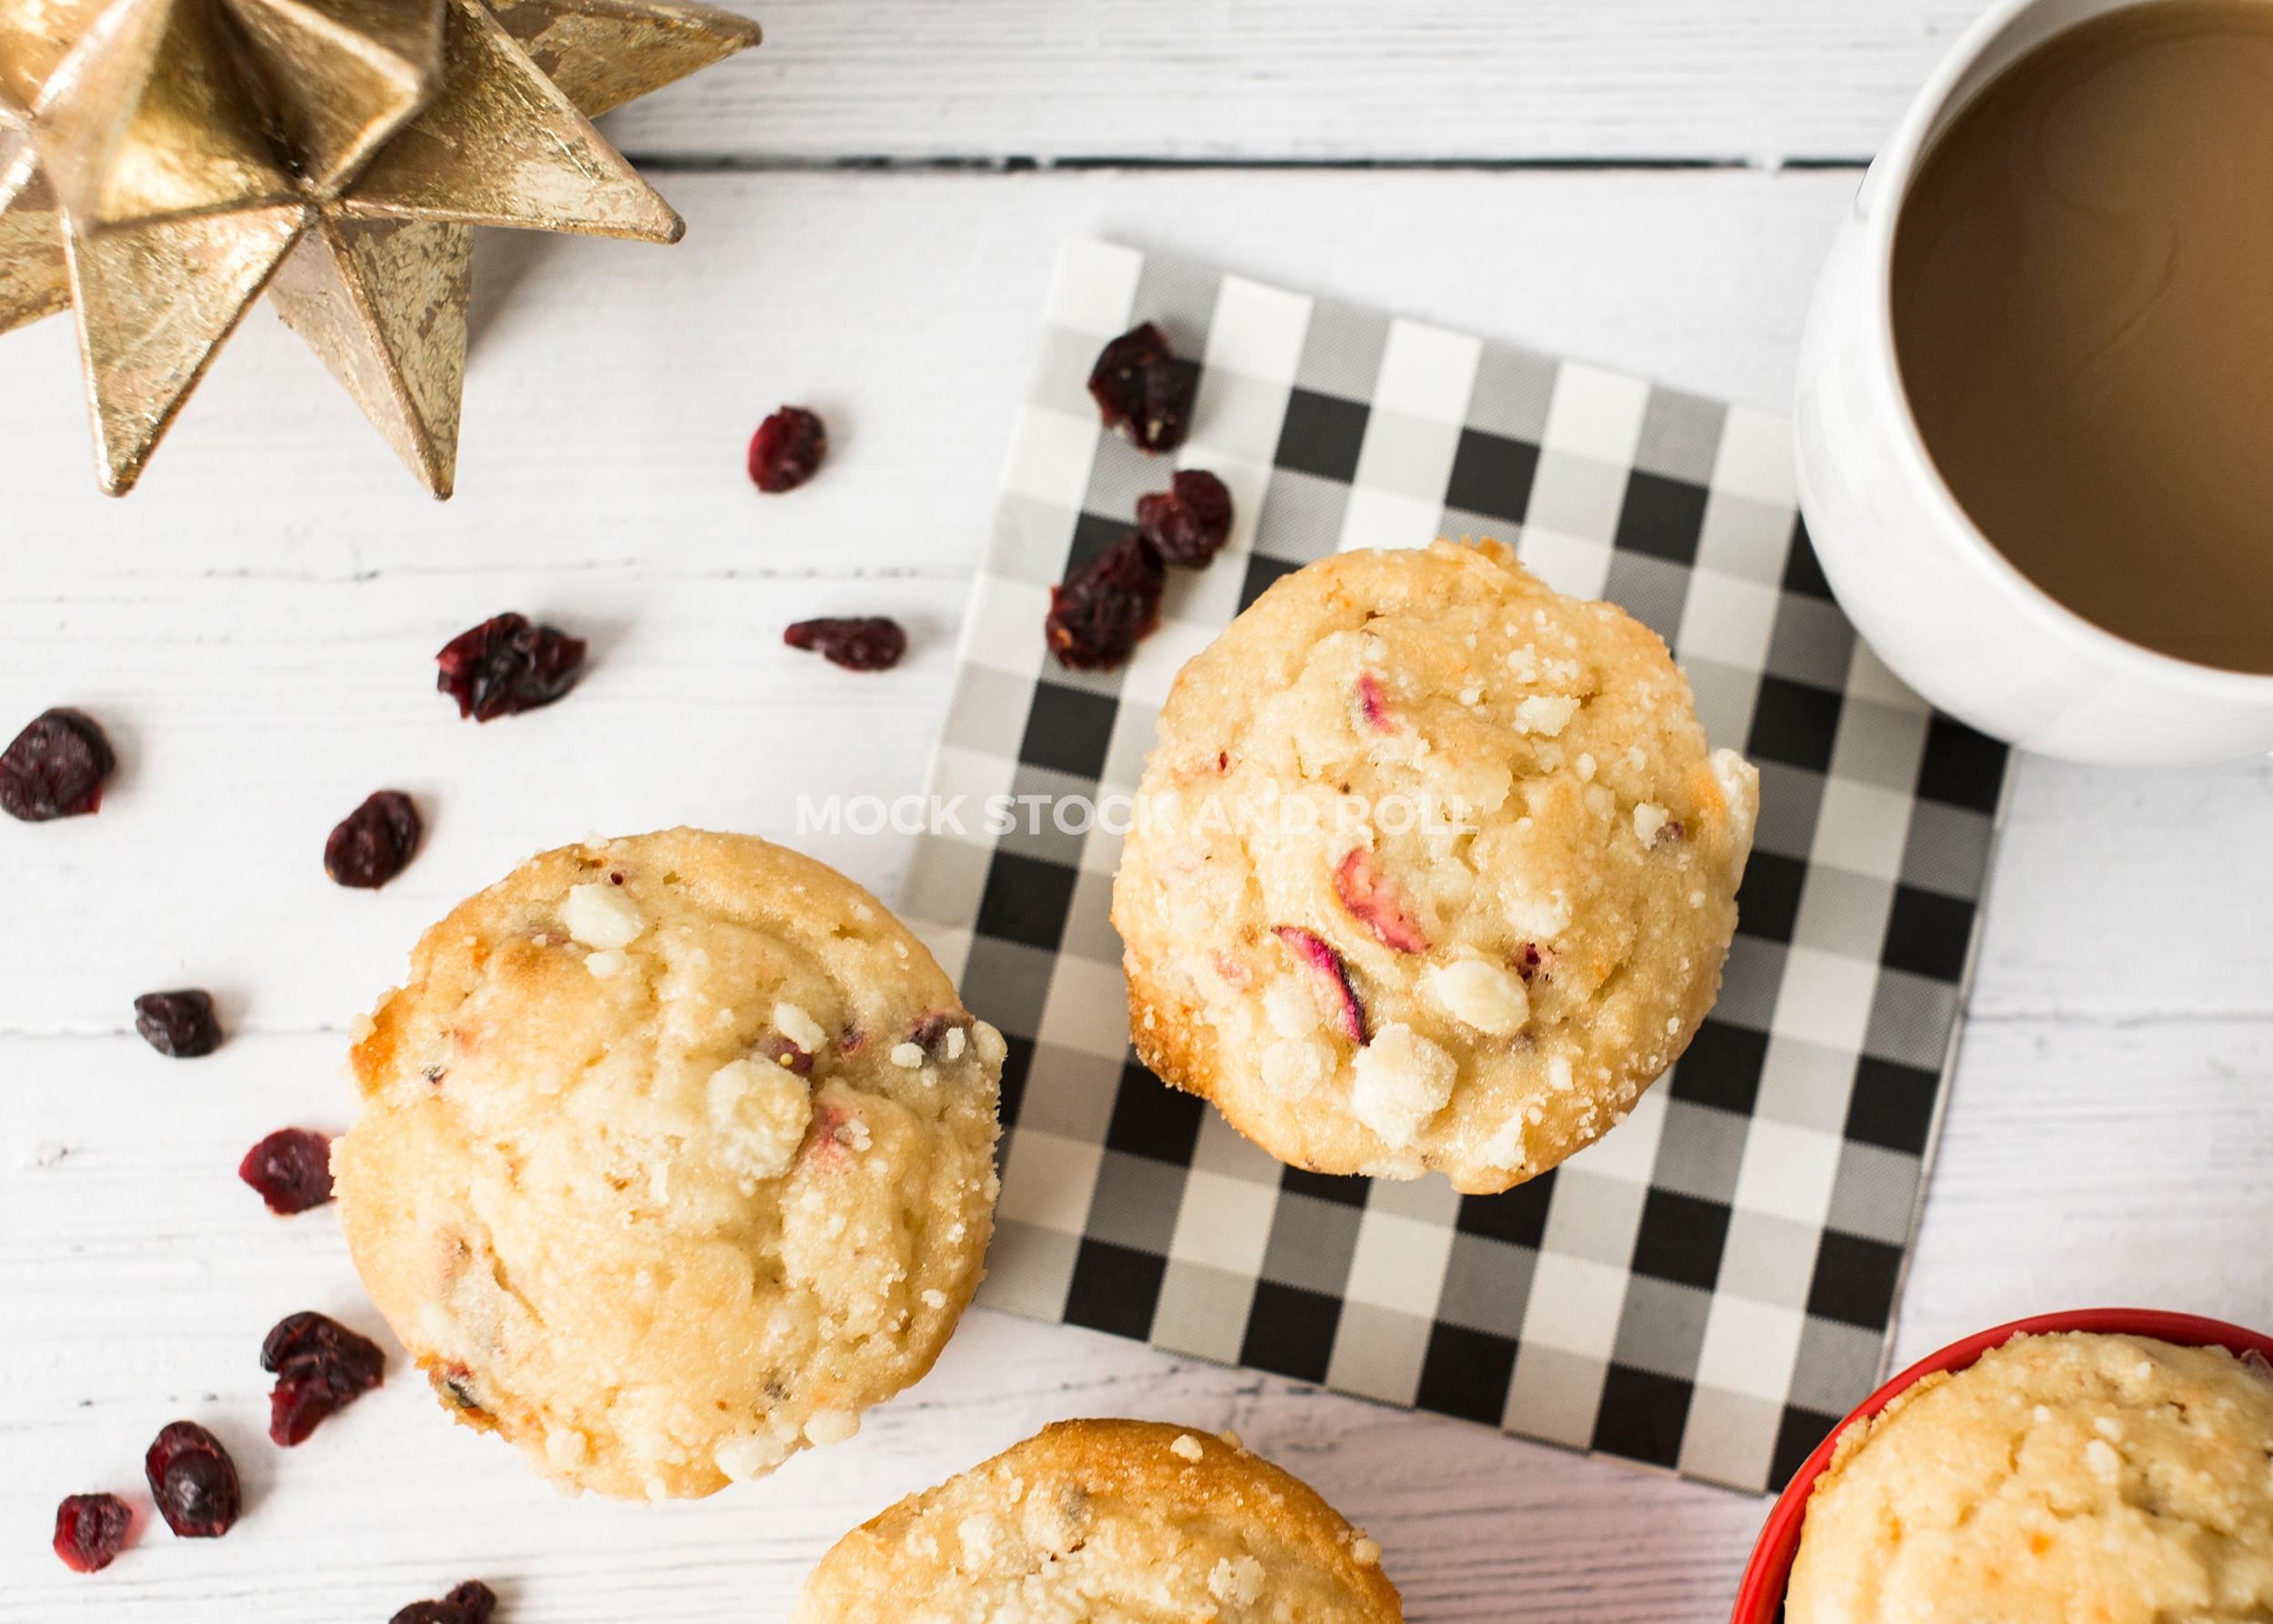 Bright and light fall styled stock photo with cranberry muffins and coffee from Mock Stock and Roll.